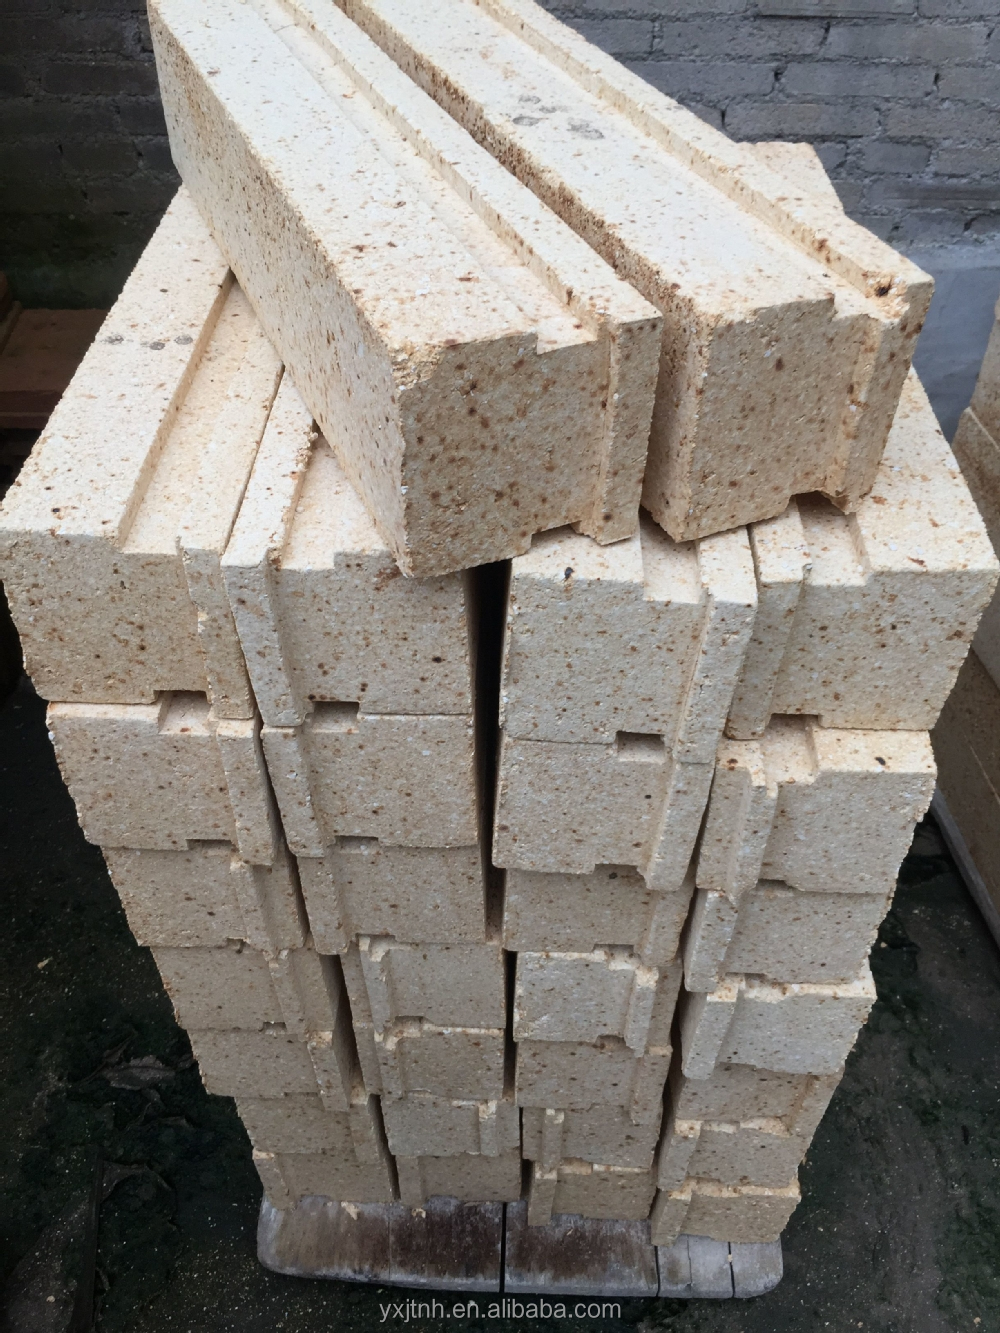 Refractory Cordierite furnace insulation material